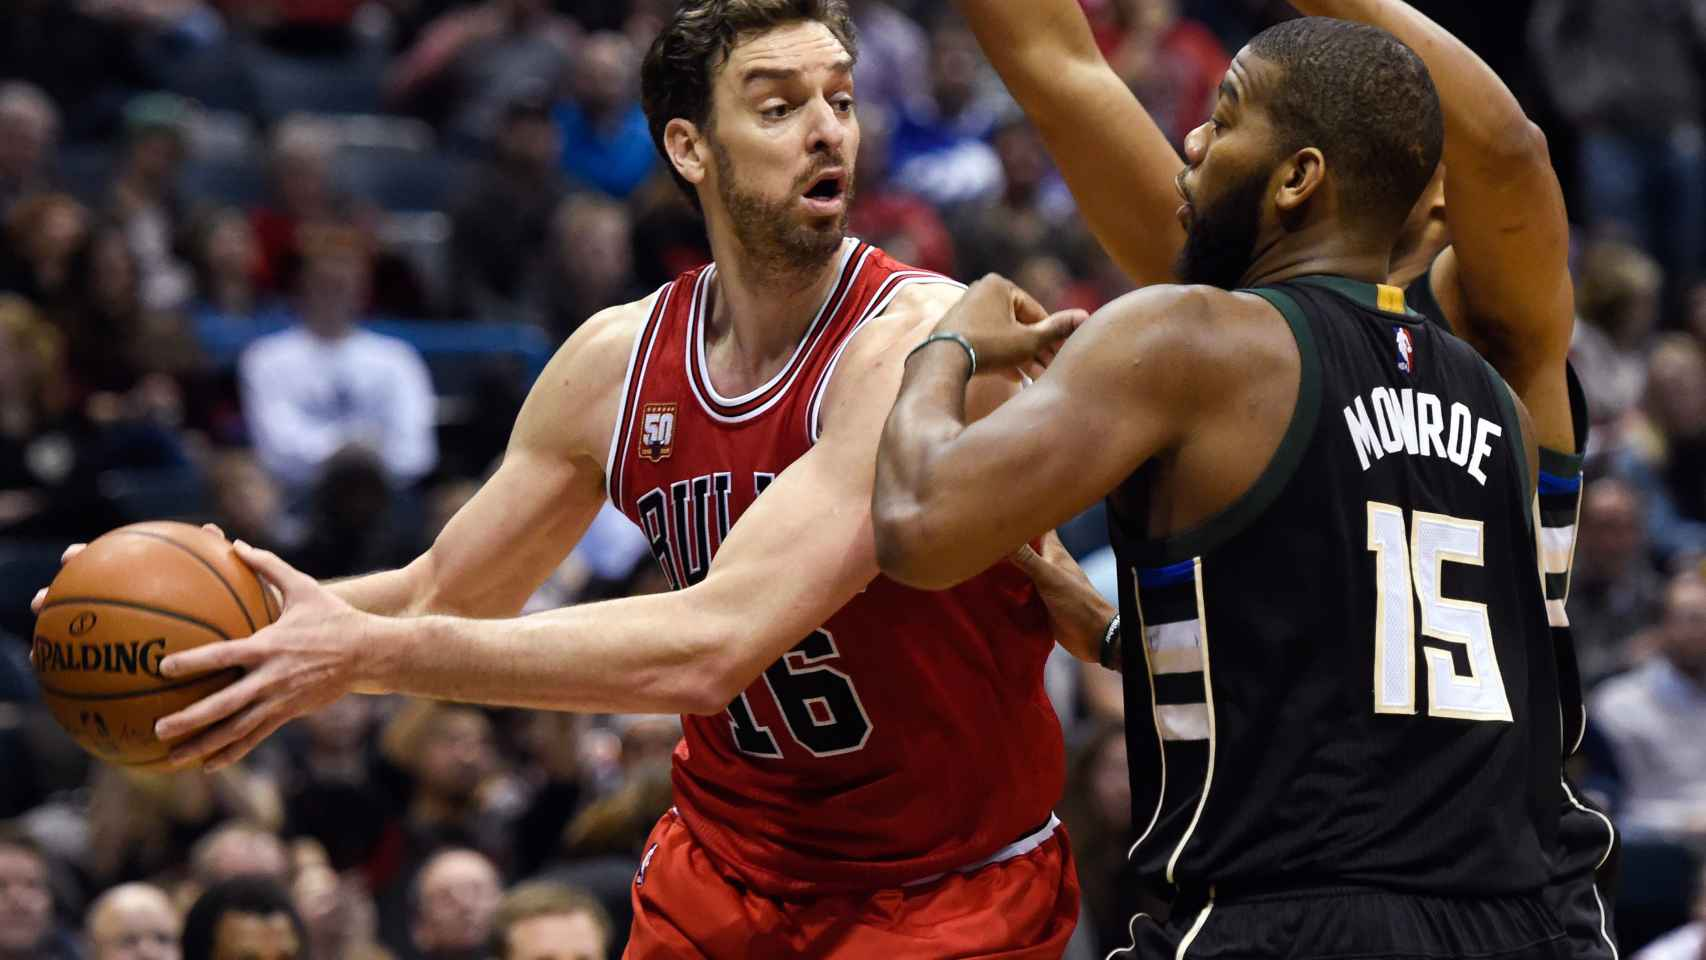 Pau Gasol sustituirá a Jimmy Butler en el All Star Game de Toronto.